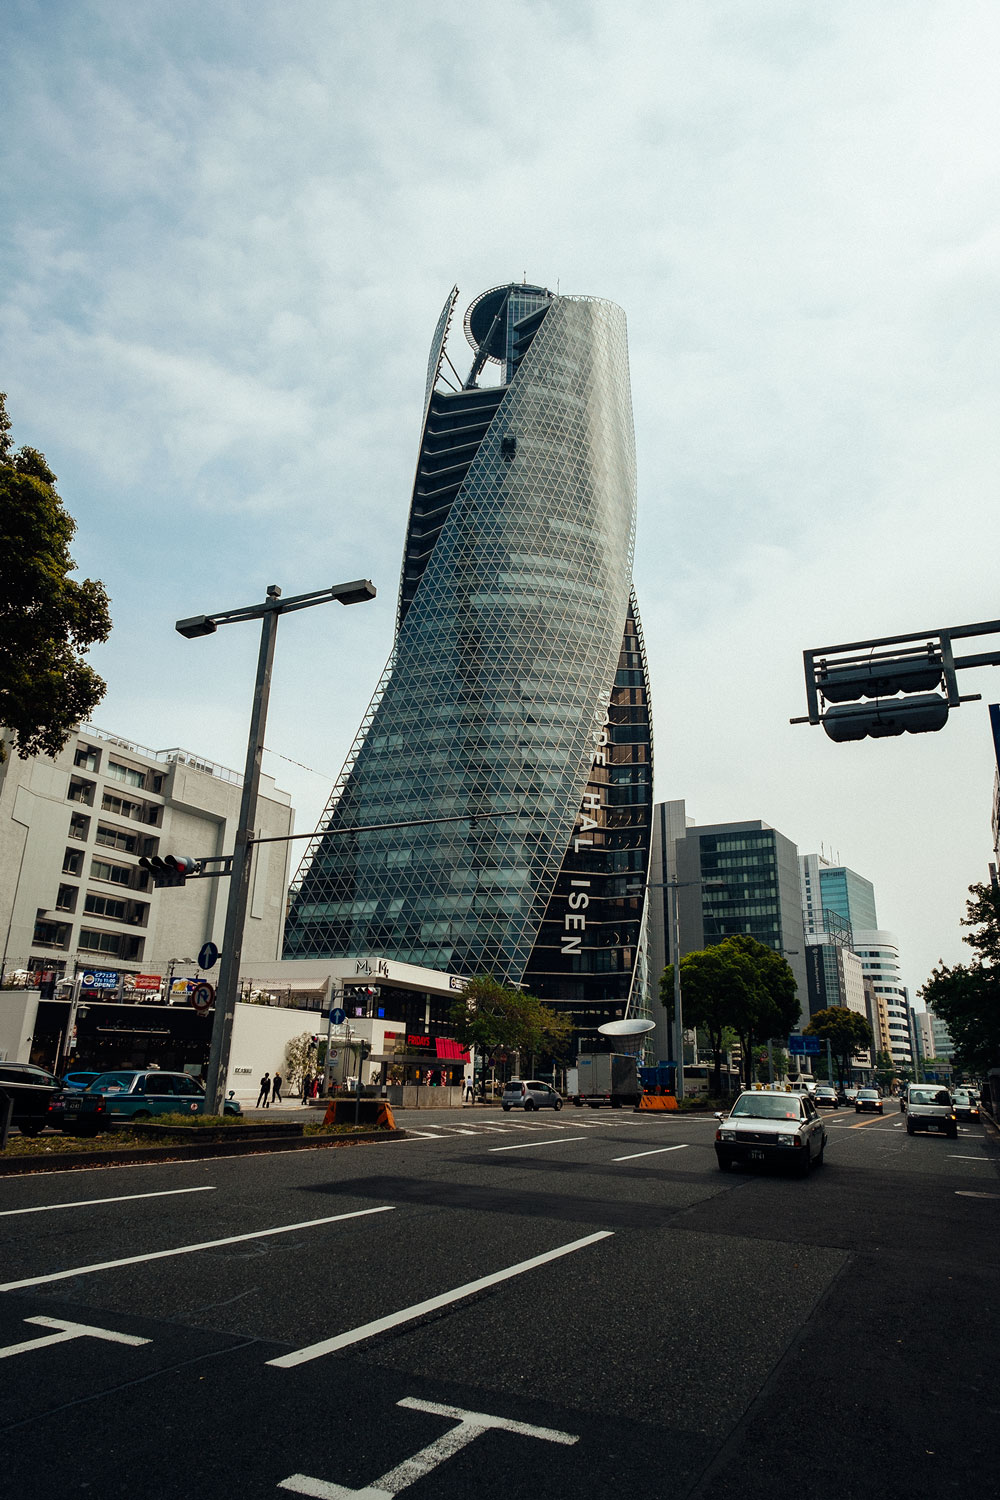 Nagoya's new shopping tower